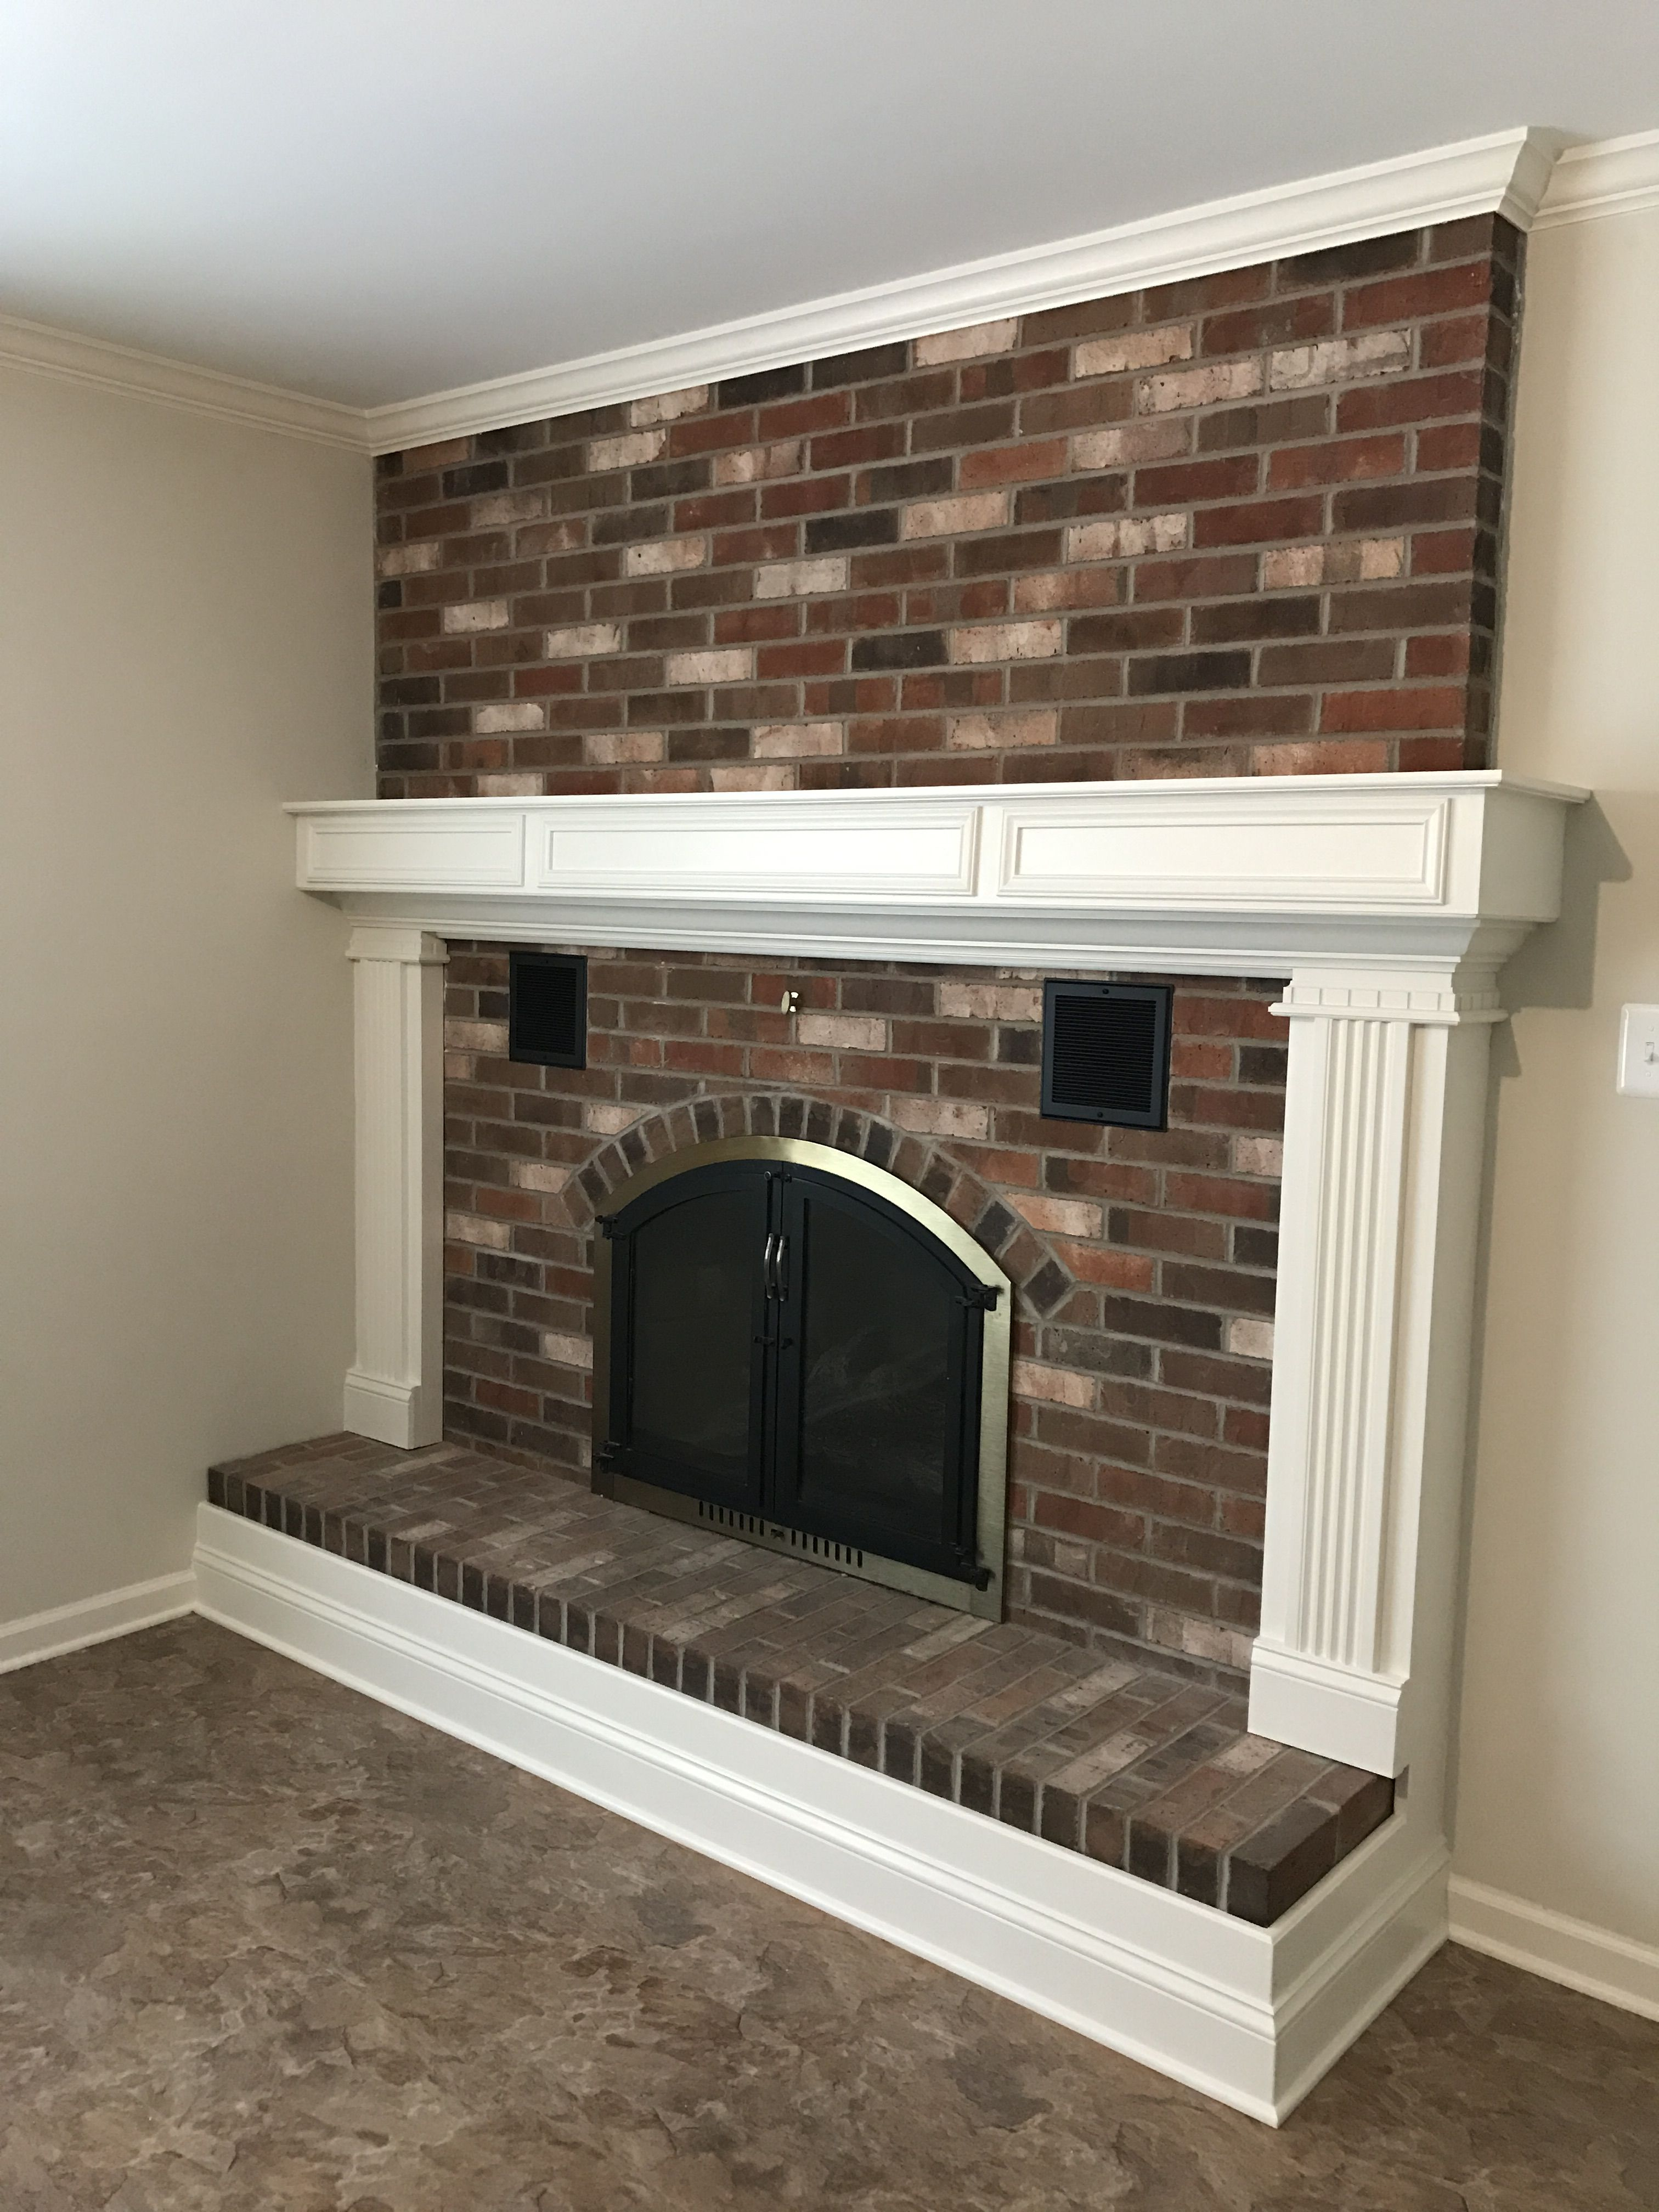 Updated Brick Fireplace With New Surround Trim Around Hearth And Ceiling Crown Molding Fireplace Trim Fireplaces Layout Update Brick Fireplace